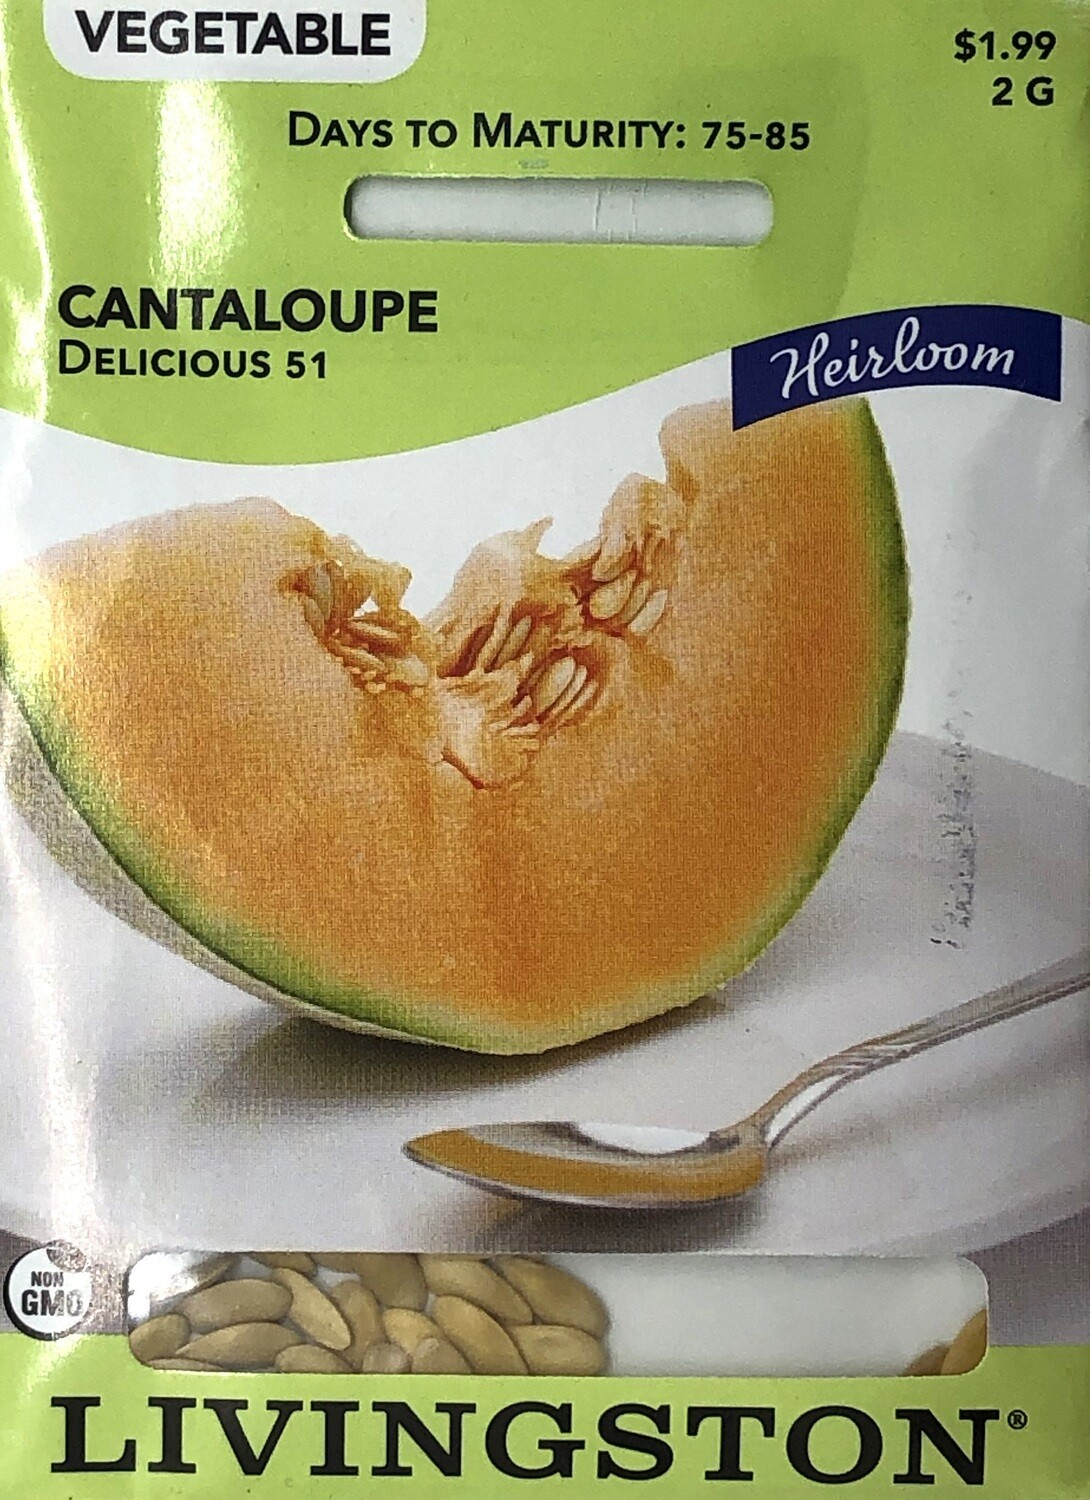 CANTALOUPE - HEIRLOOM - DELICIOUS 51